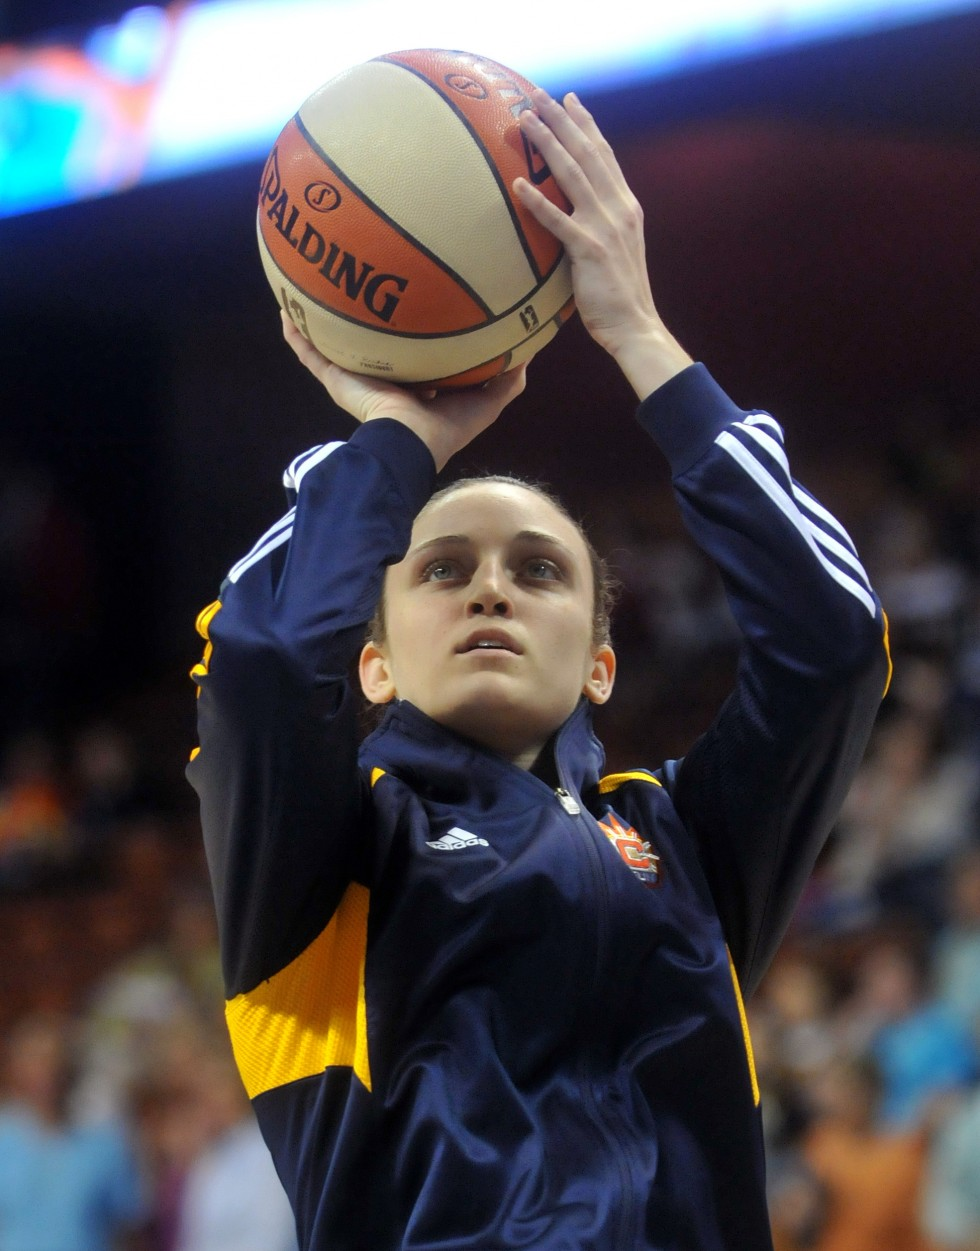 Former UConn standout and Connecticut Sun rookie Kelly Faris warms up before her first professional game against the New York Liberty at Mohegan Sun Arena Saturday night.  Connecticut Sun forward Mistie Bass, Kelly Faris and New York Liberty's Cappie Pondexter in action at the Sun season opener at Mohegan Sun Arena Saturday night. Photo by BRAD HORRIGAN   bhorrigan@courant.com